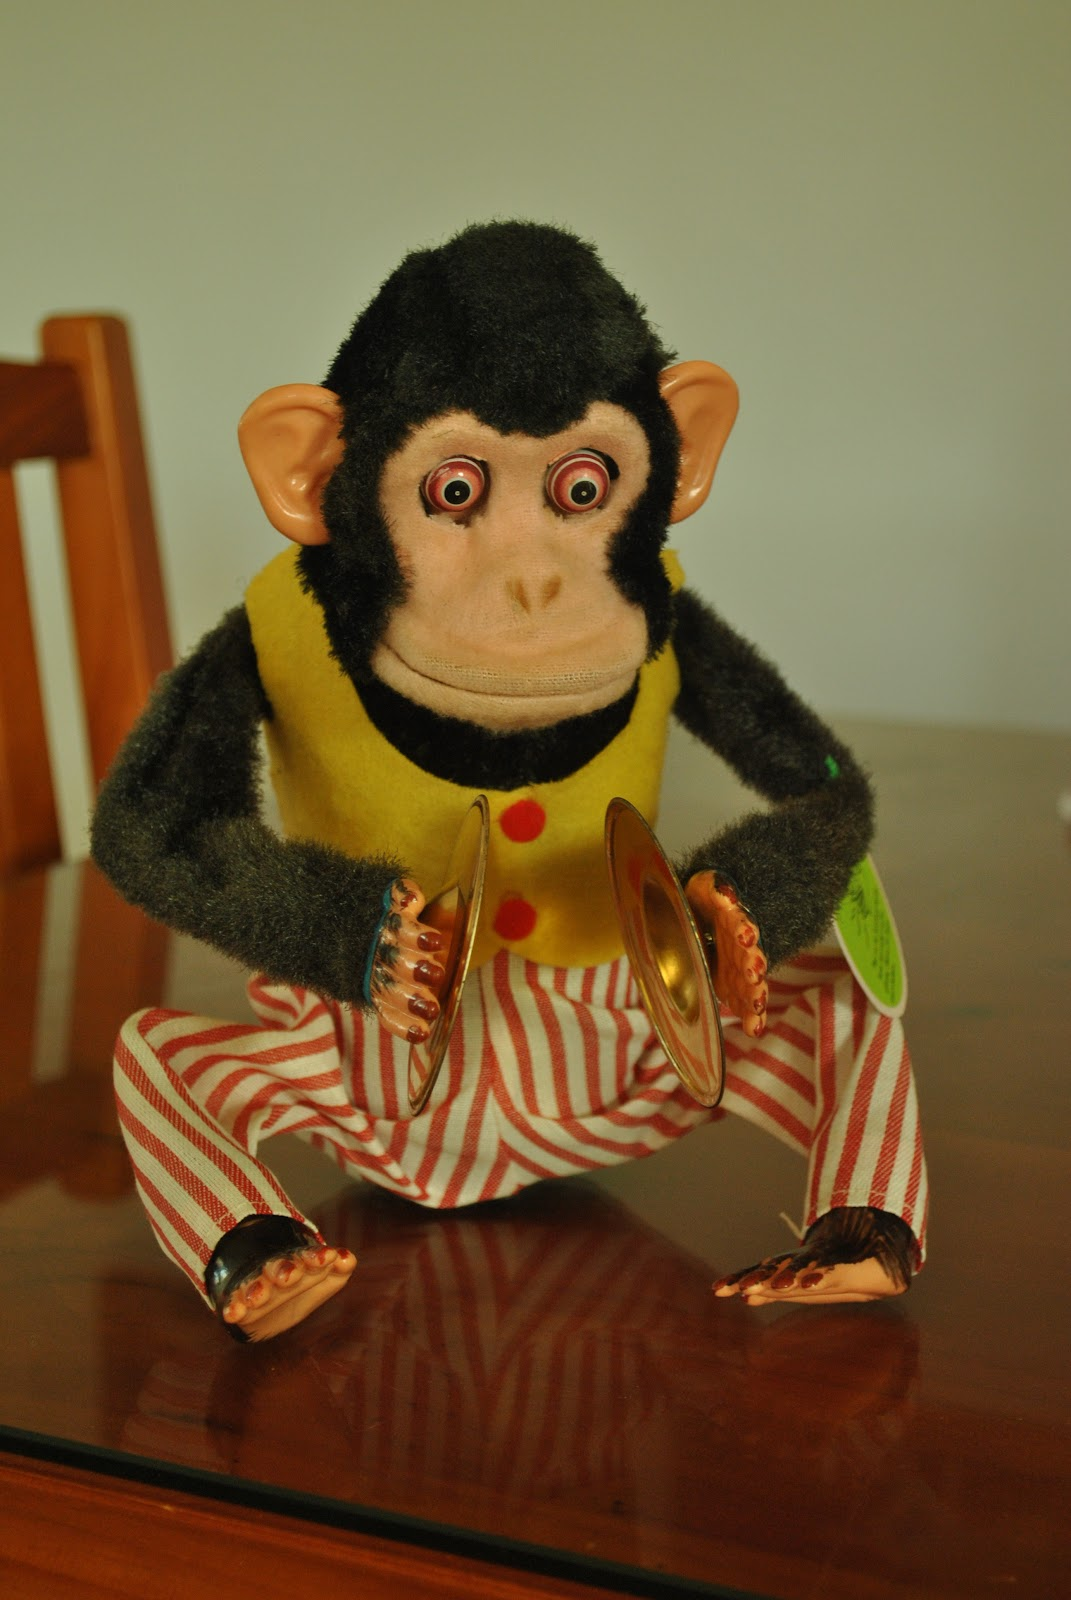 Cymbal-banging monkey toy